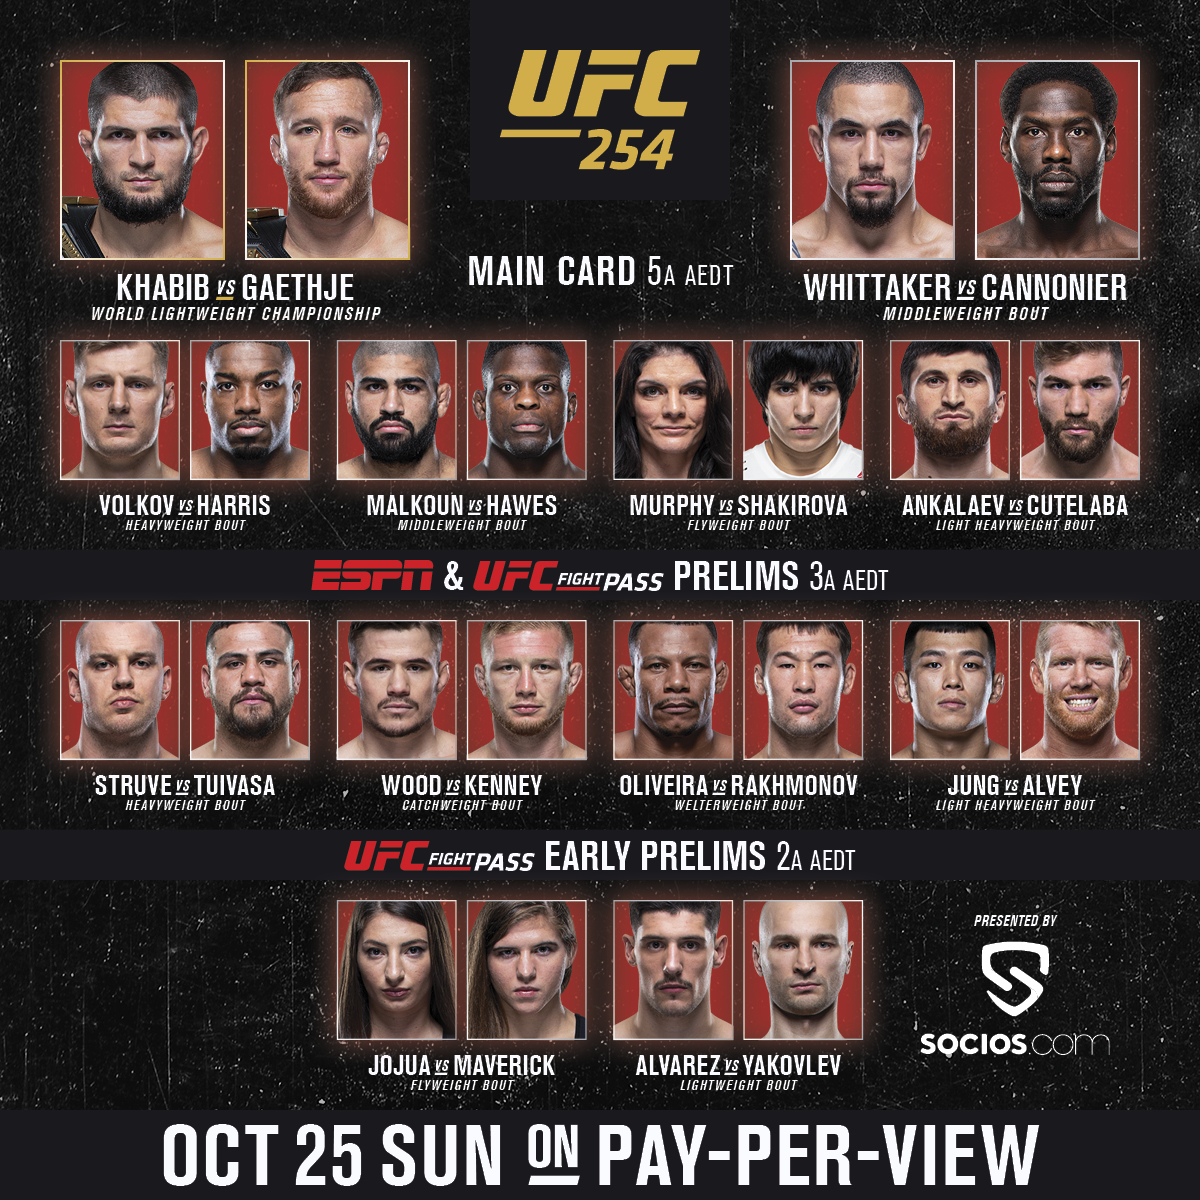 See you in a few hours for FIGHT DAY!  ⏰ Don't forget – the #UFC254 main card starts at 5am AEDT / 7am NZDT: https://t.co/WNrSgYjLVN  #InAbuDhabi @VisitAbuDhabi https://t.co/4R82aS81NF